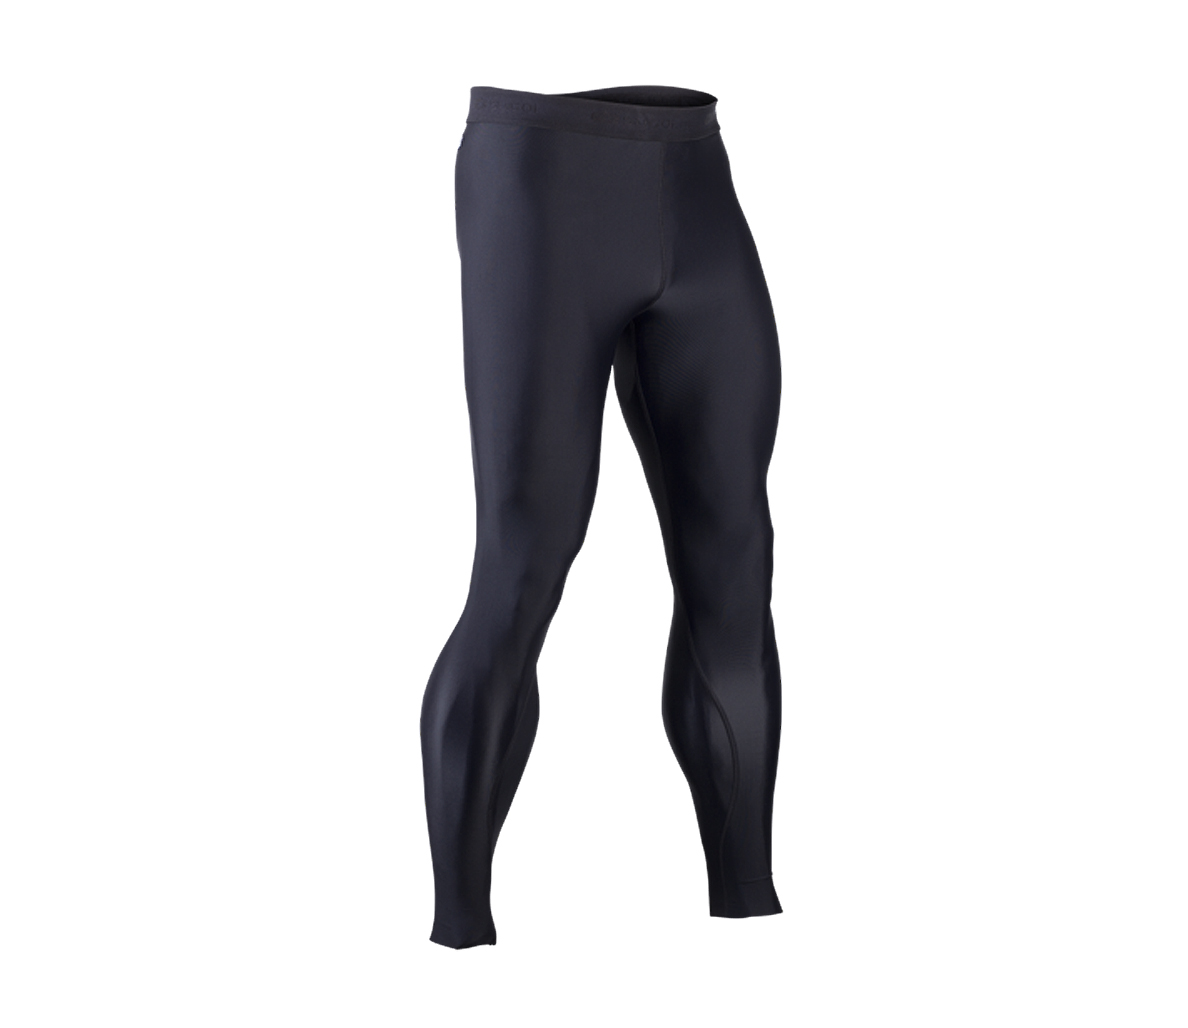 6a03148405 The Best Performance Tights for Men